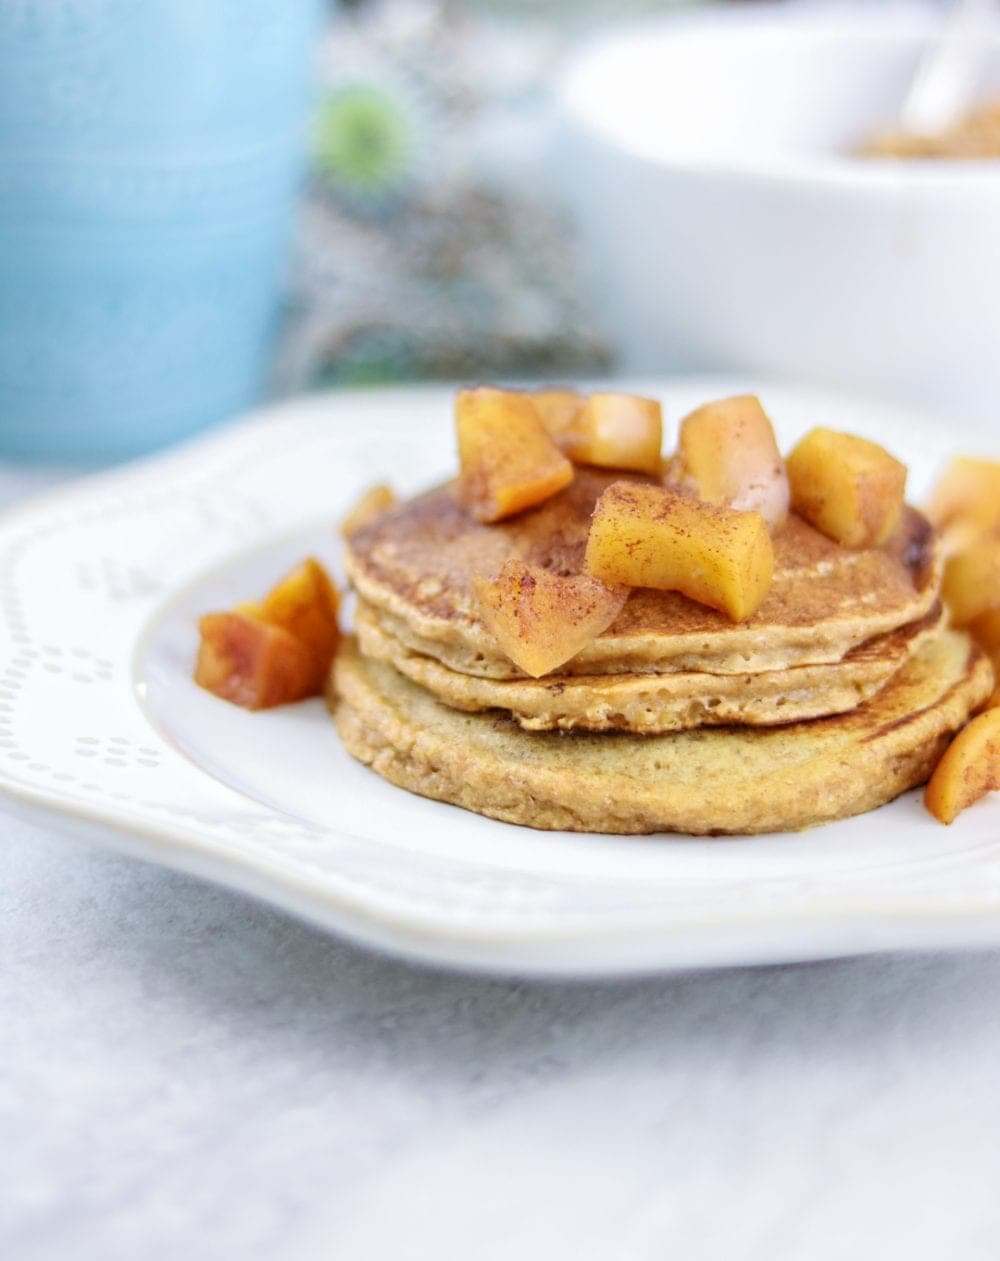 Easy Sweet Potato Pancakes with Cinnamon Apples on white plate